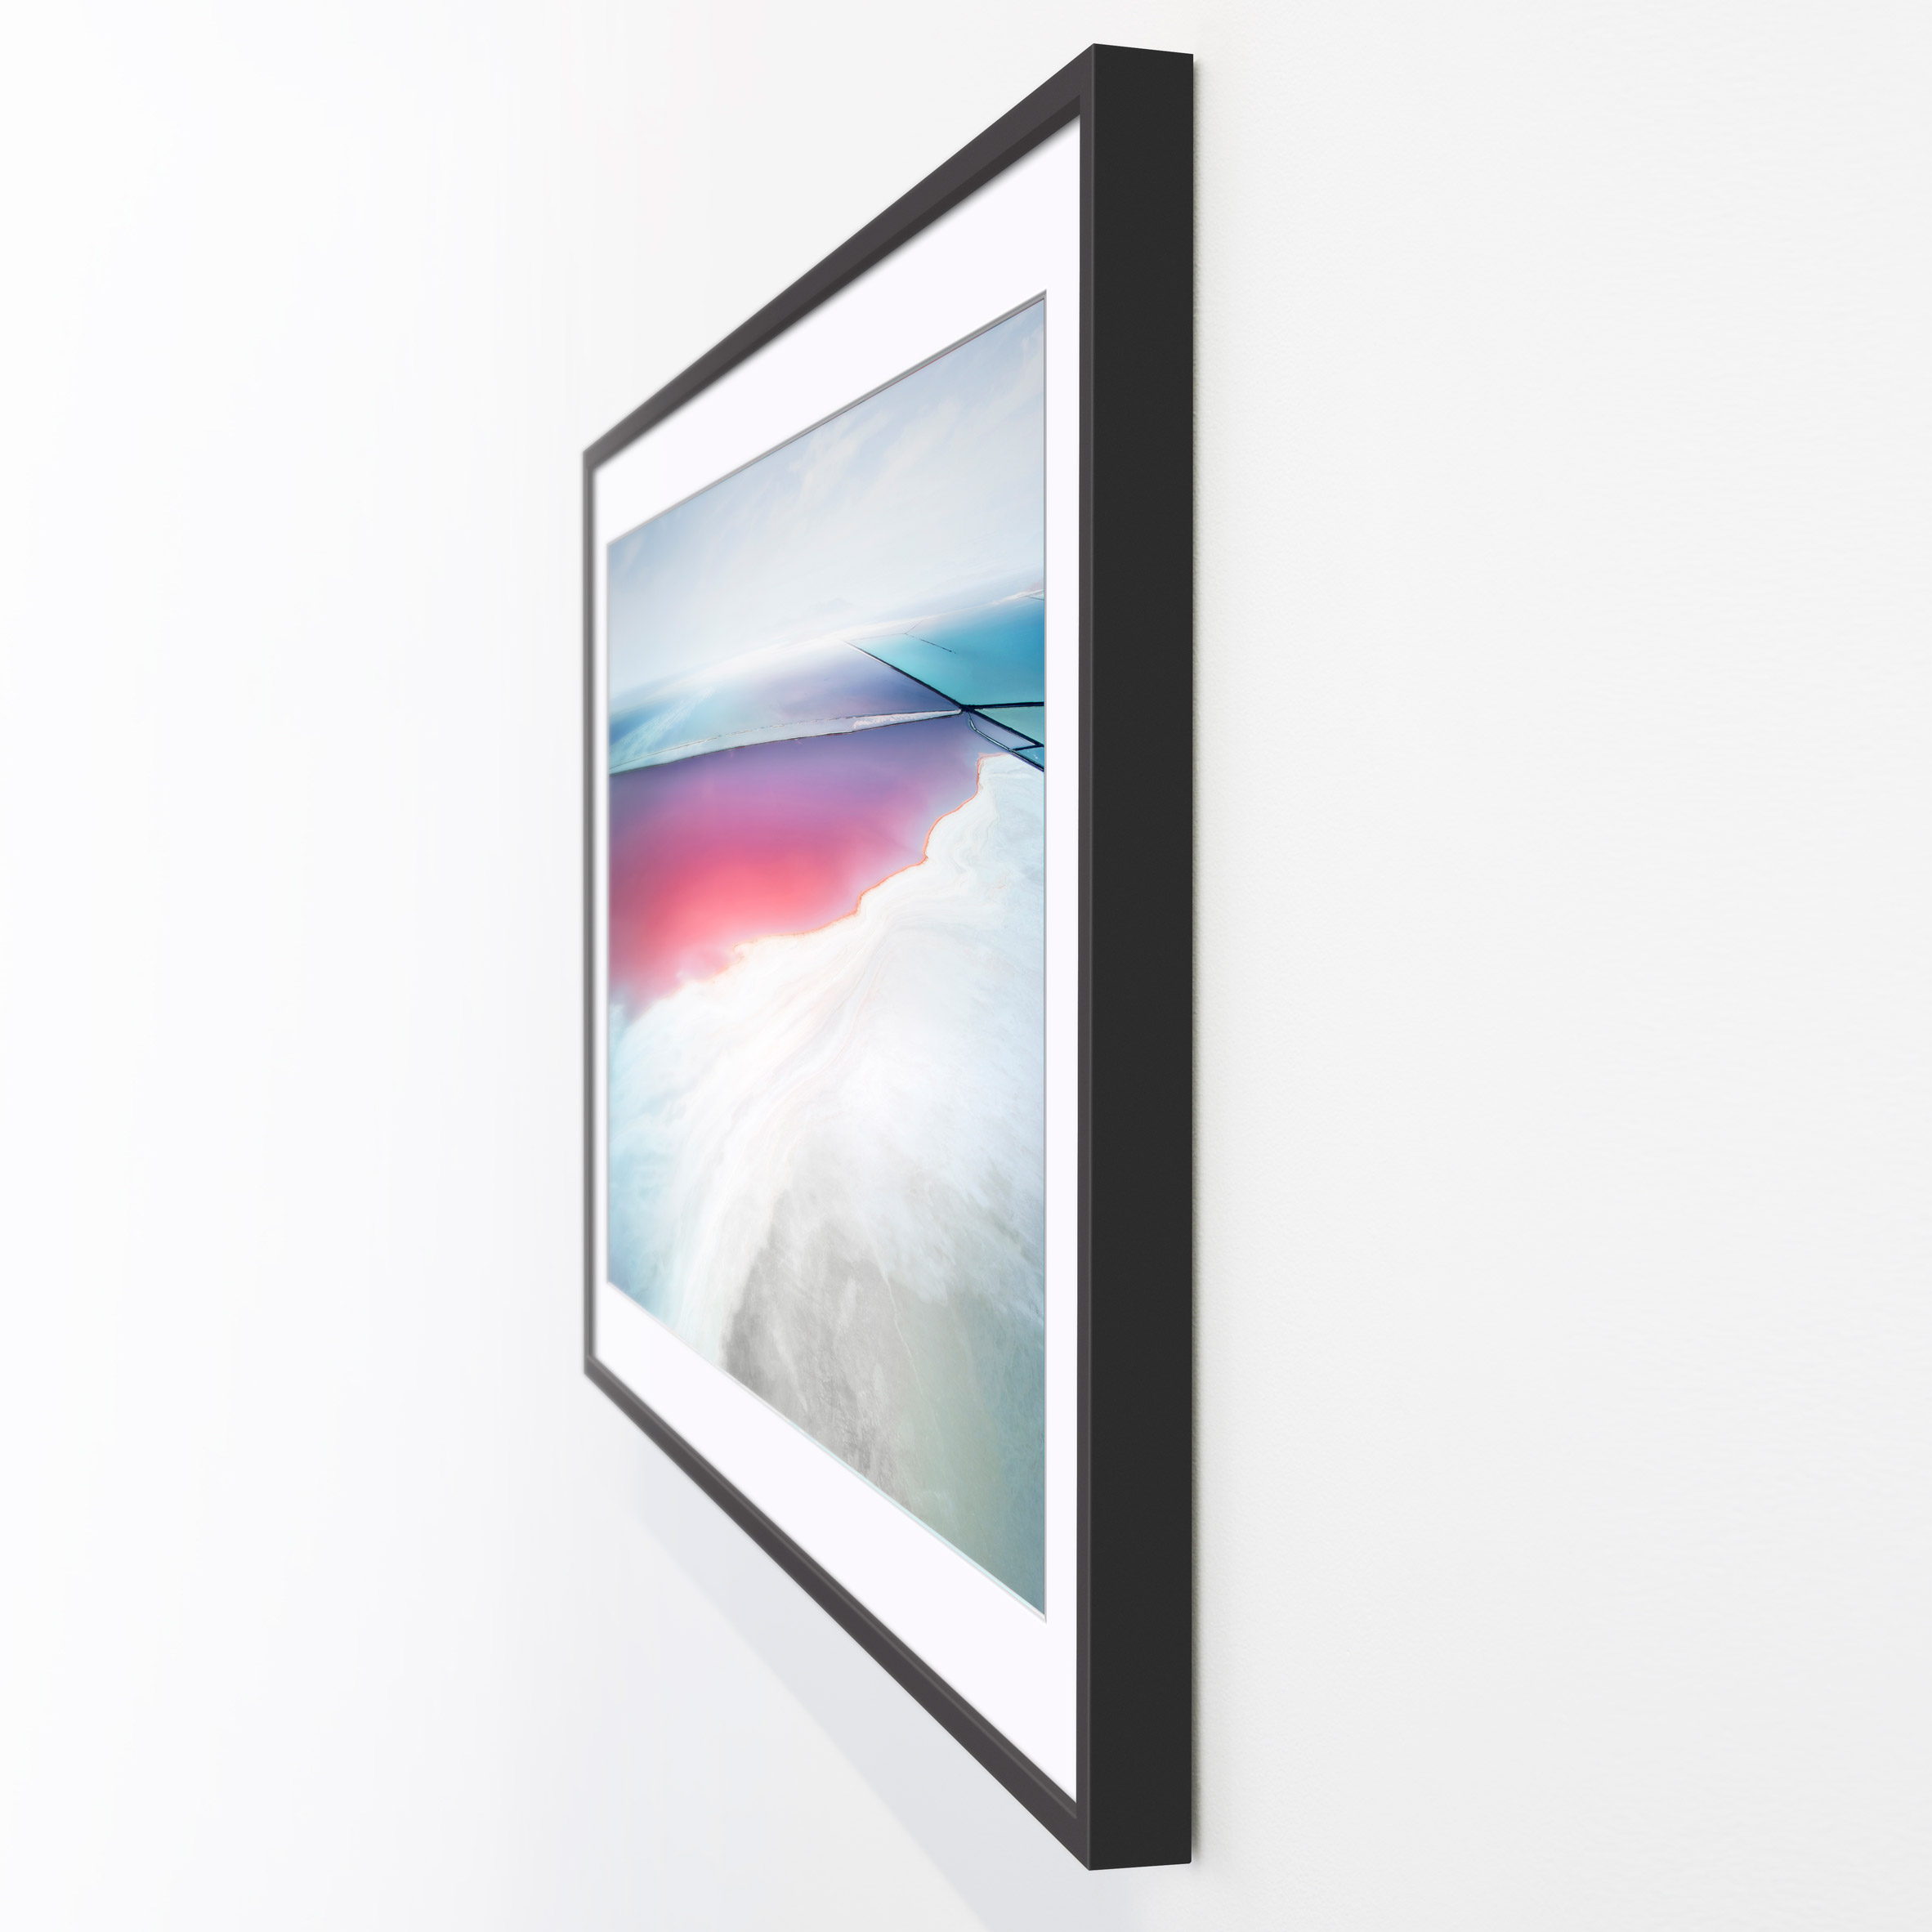 Yves Béhar designs Samsung television to look like a framed work of art